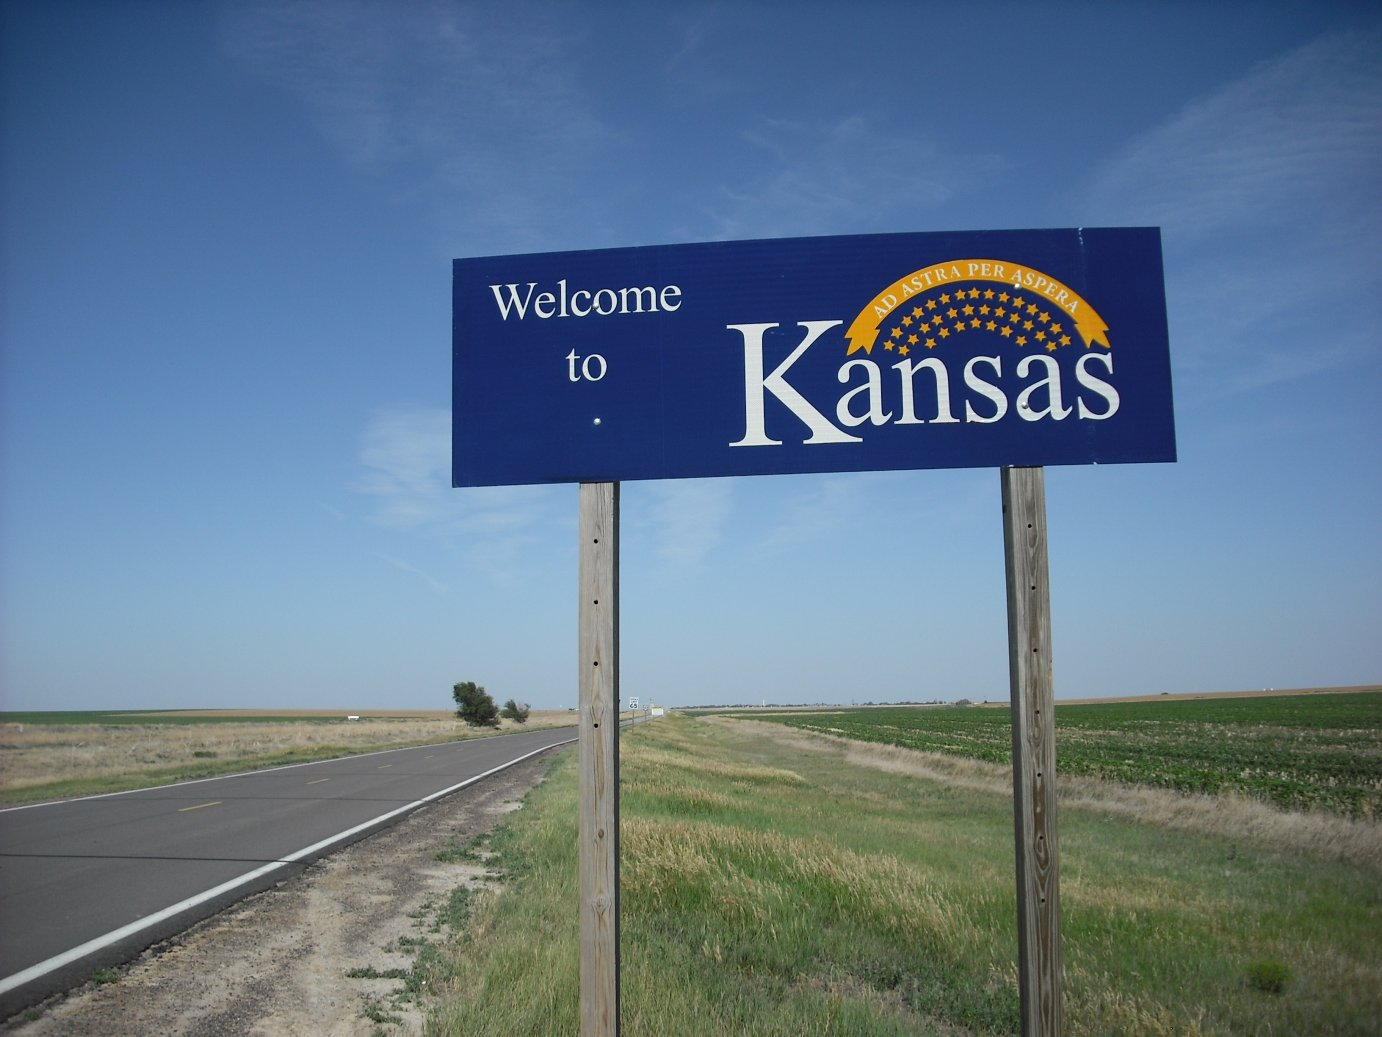 Welcome to Kansas sign (Photo by J. Schafer)